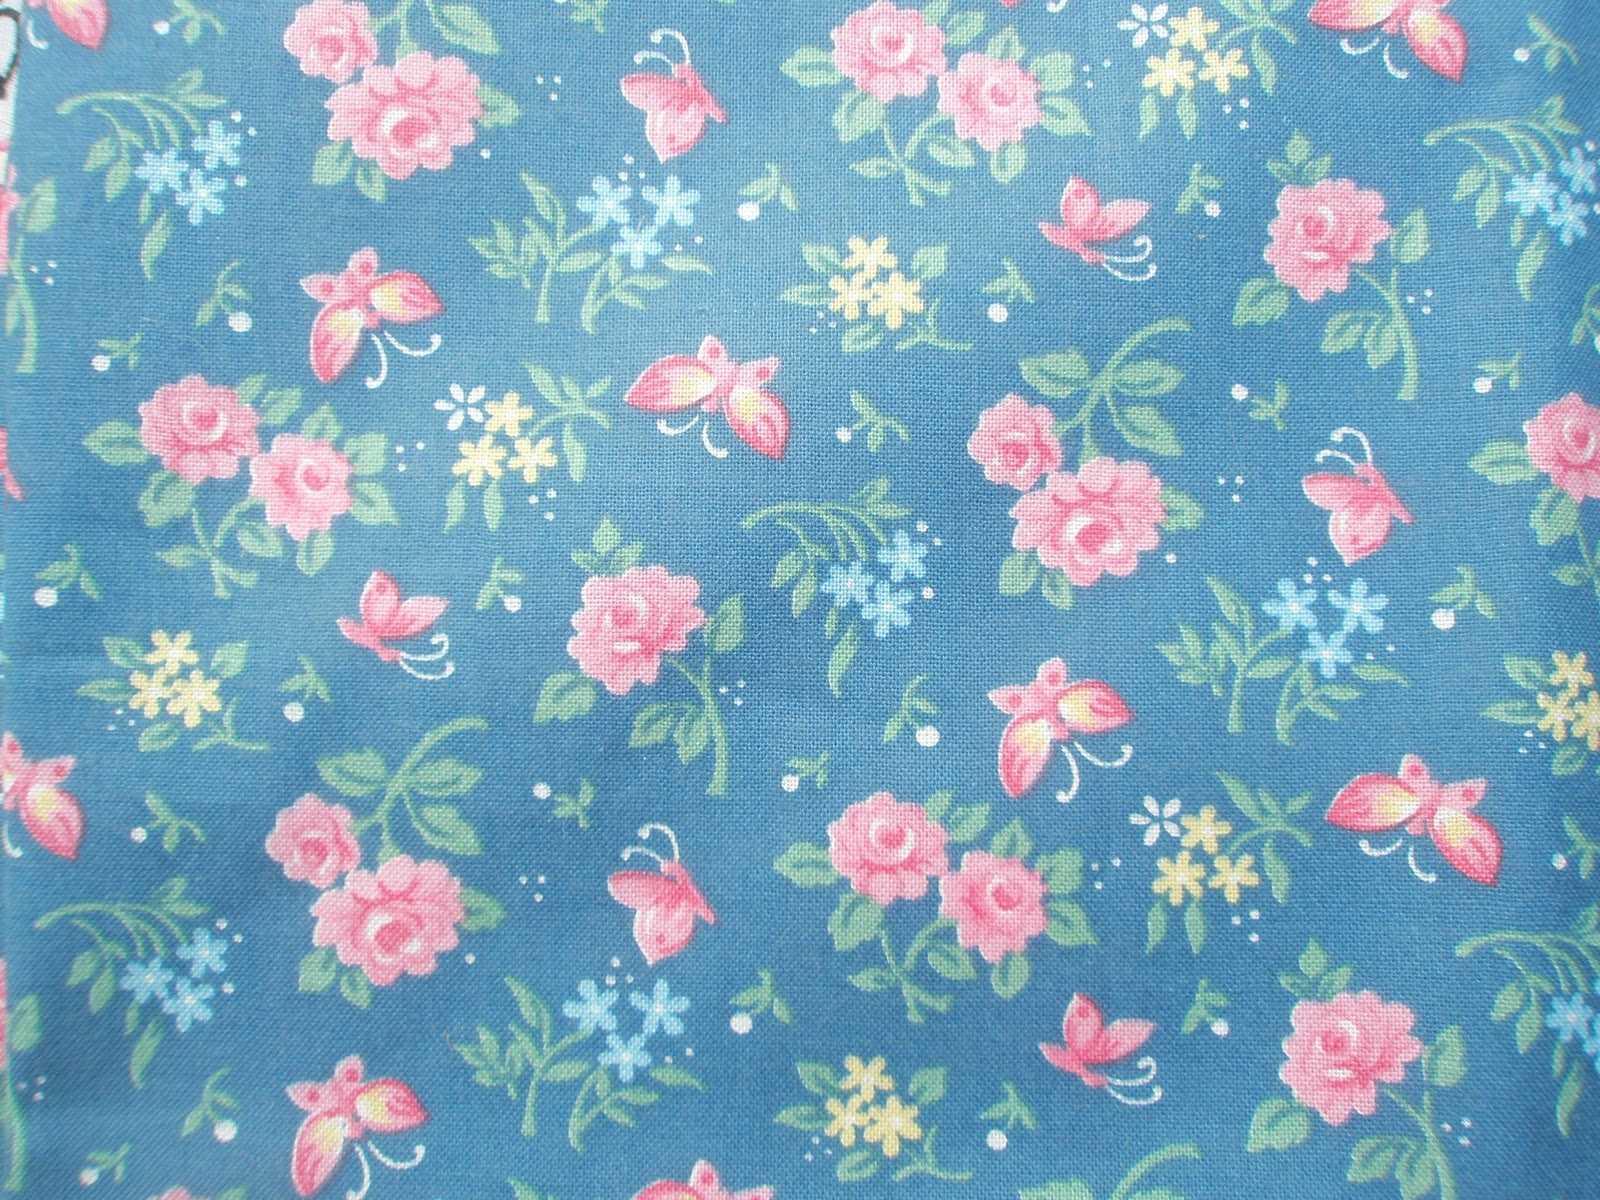 flower tumblr backgrounds ws0hfurn Blue Flowers Tumblr wallpapers 1600x1200